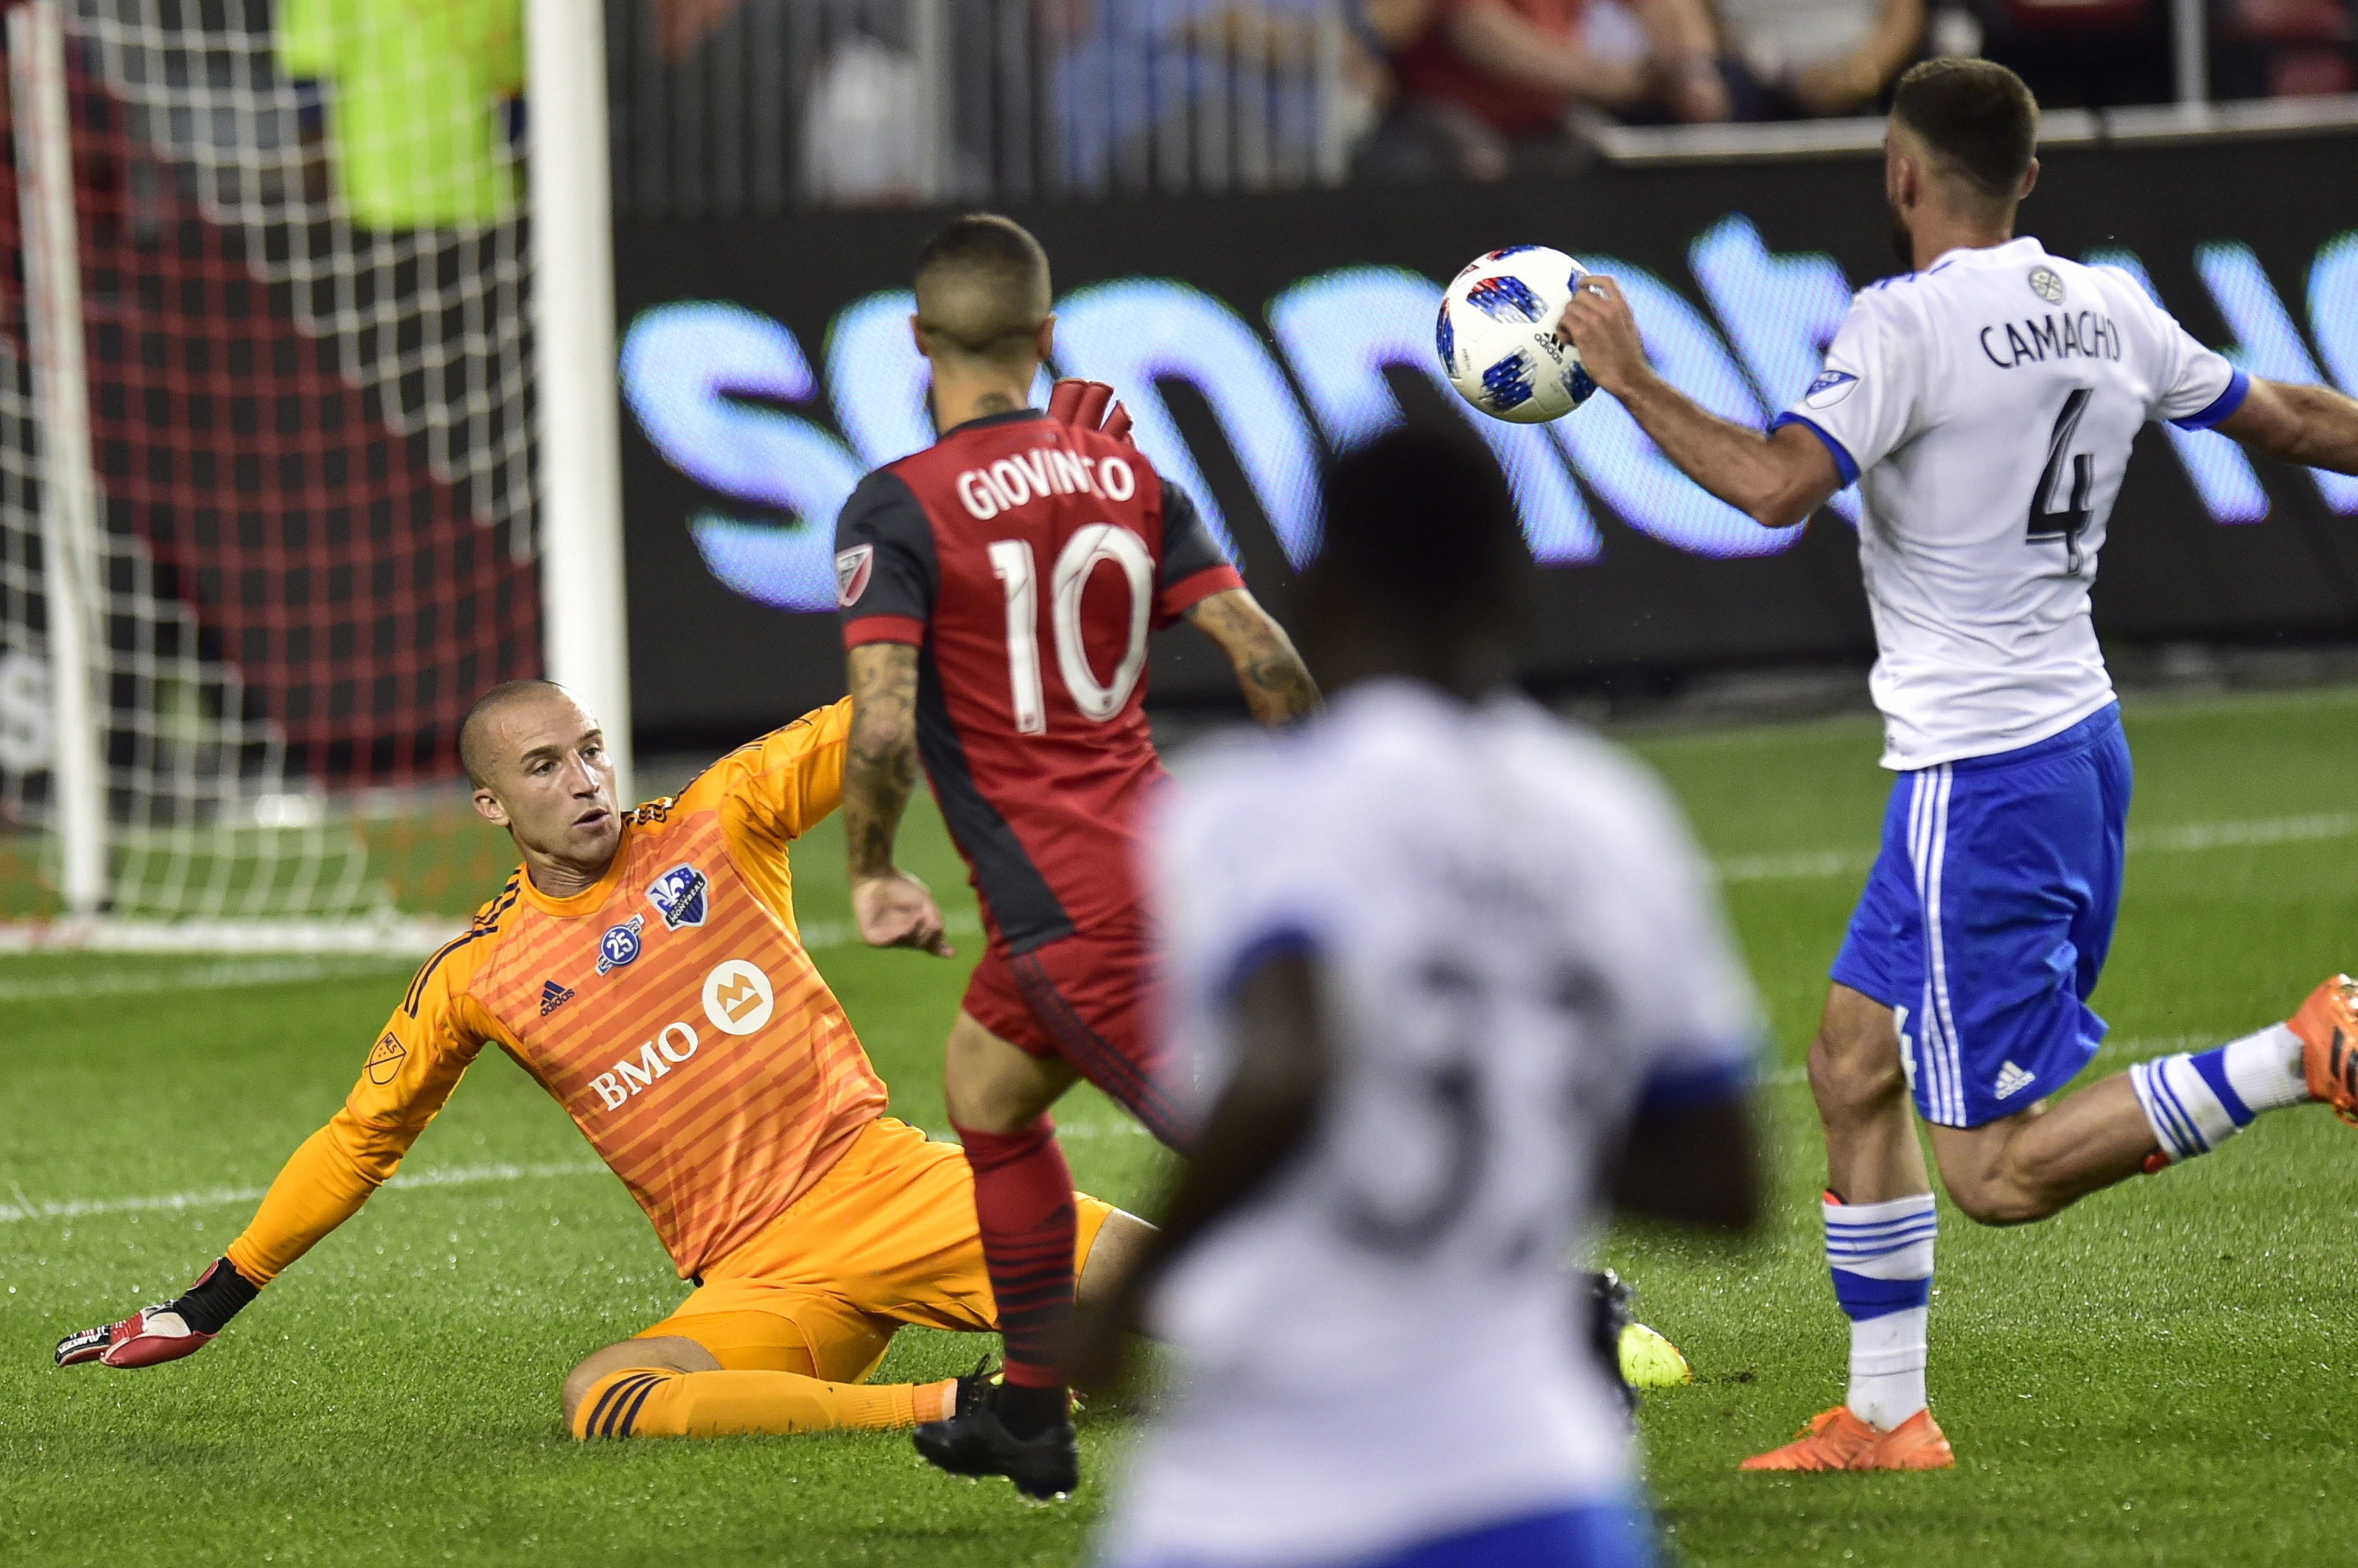 Giovinco has 2 goals in Toronto's 3-1 win over Montreal